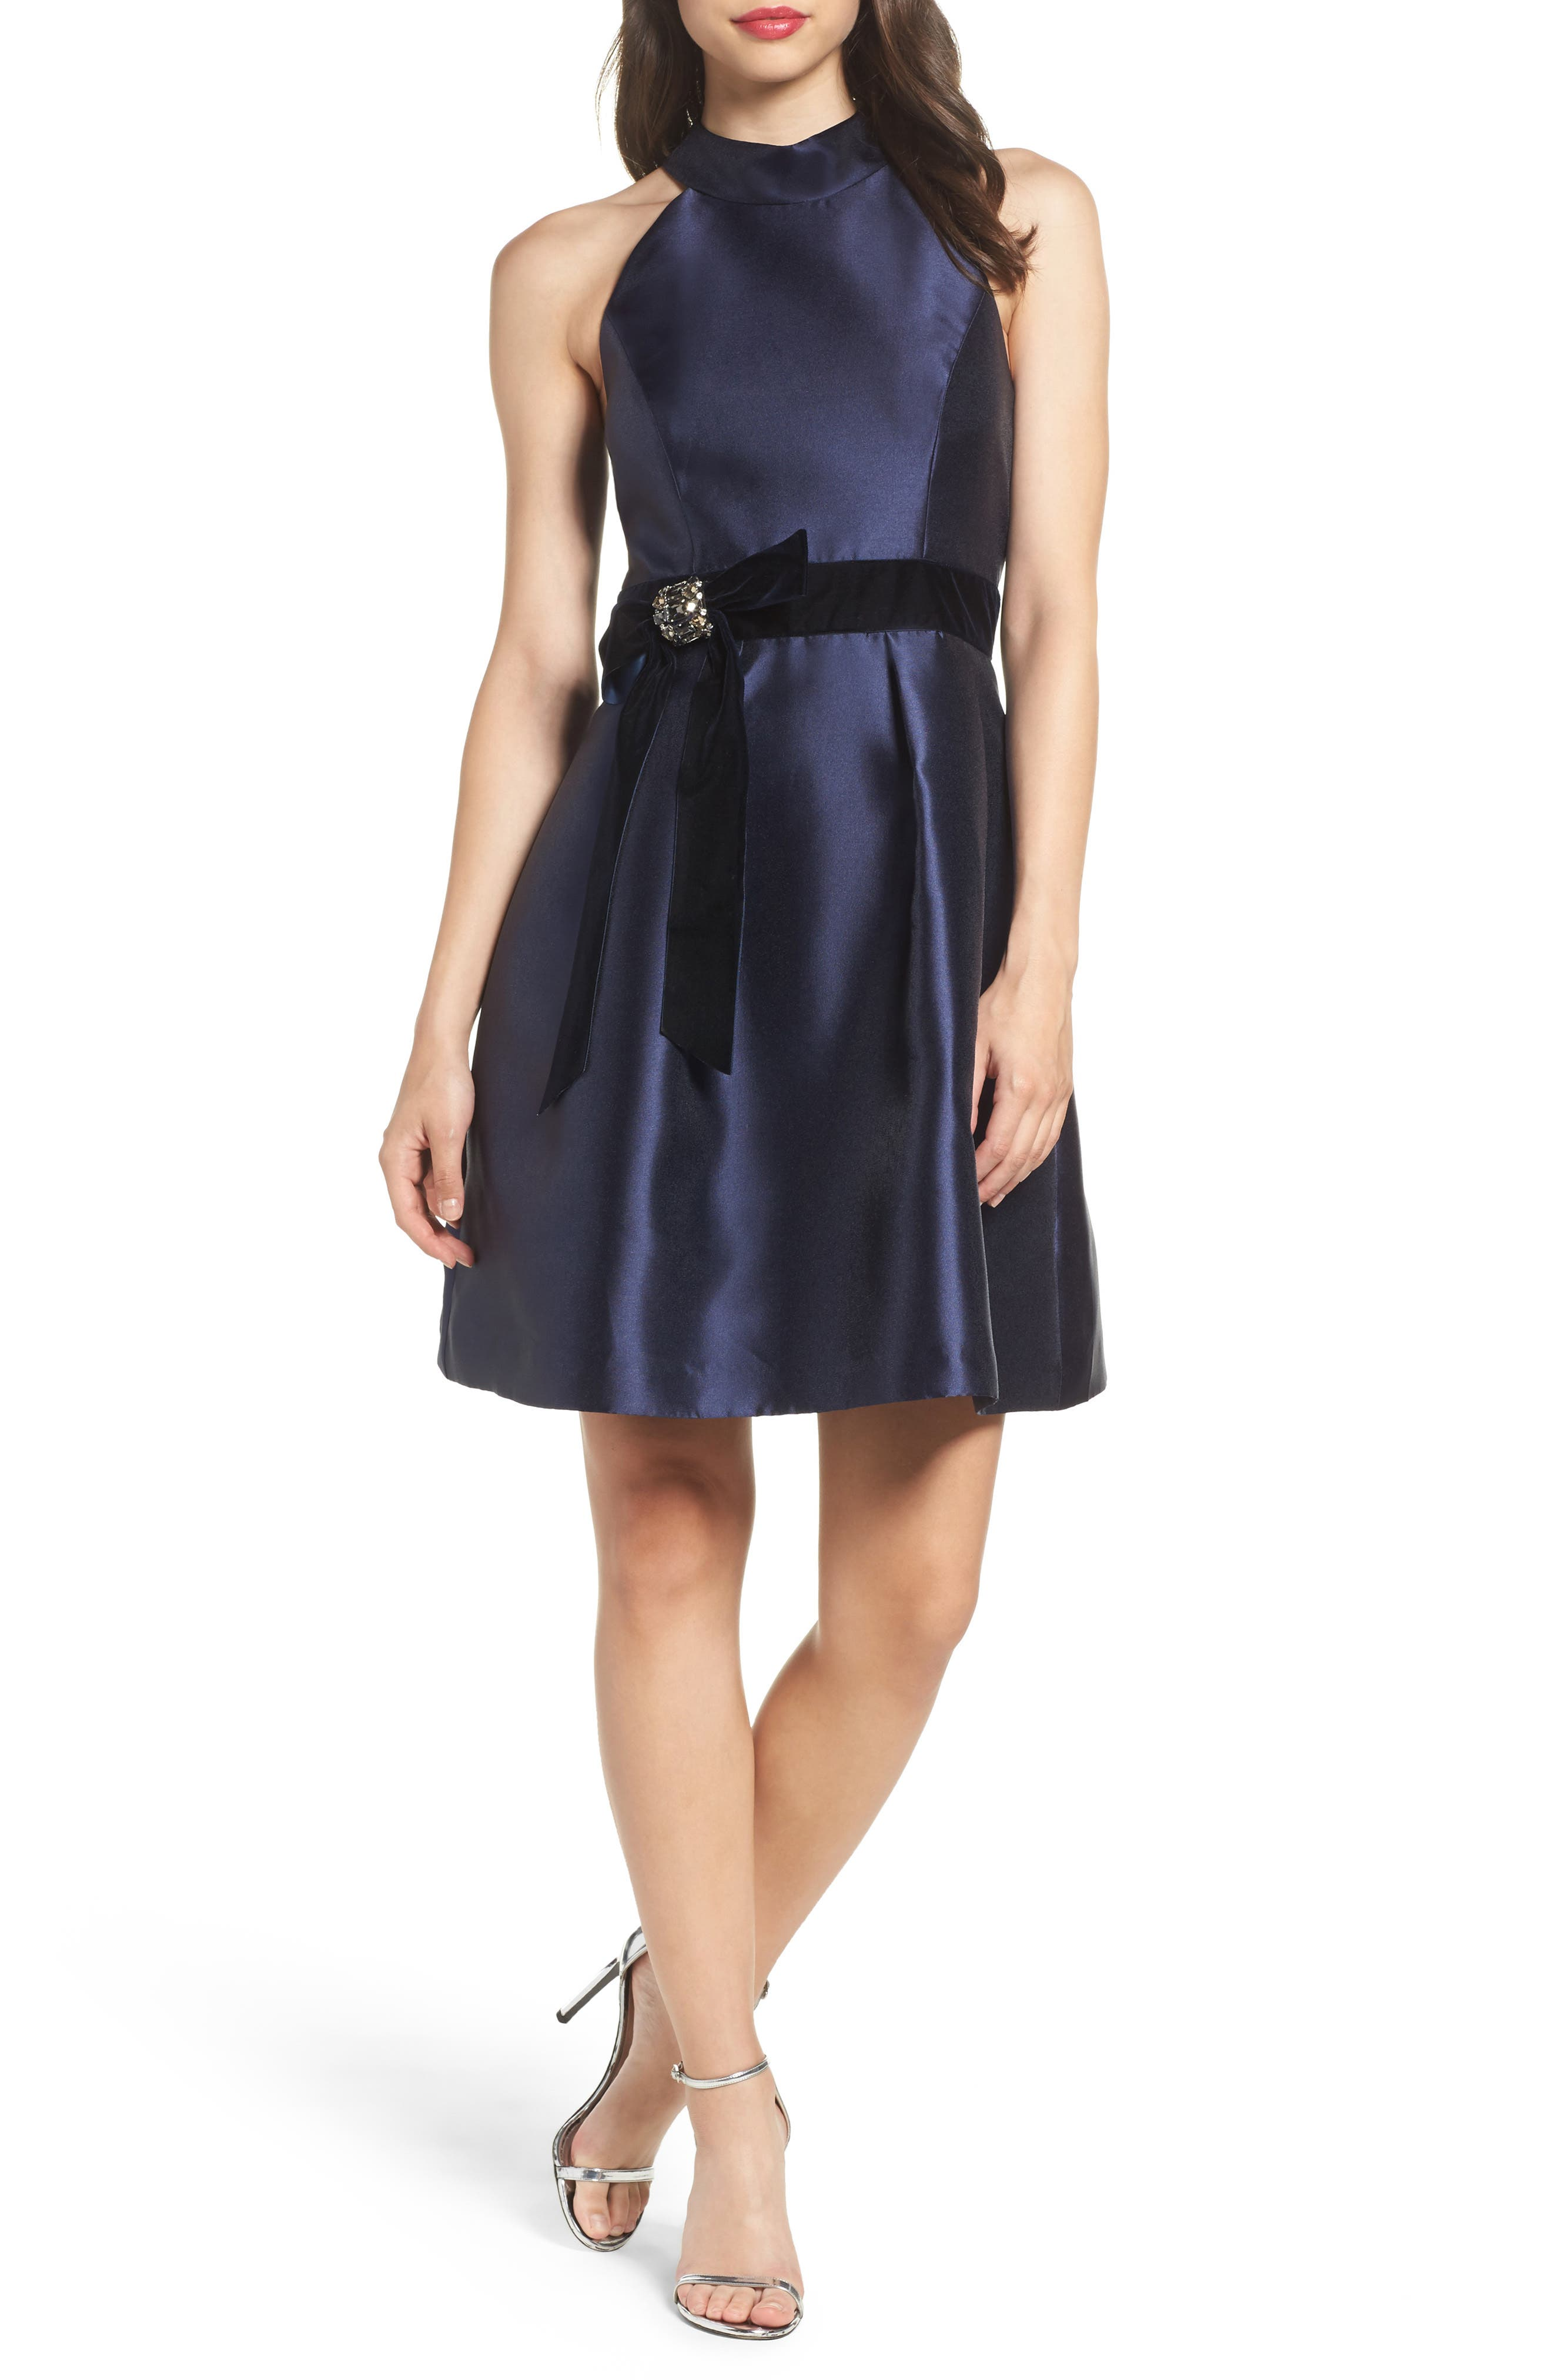 Alternate Image 1 Selected - Eliza J Halter Fit & Flare Dress (Regular & Petite)